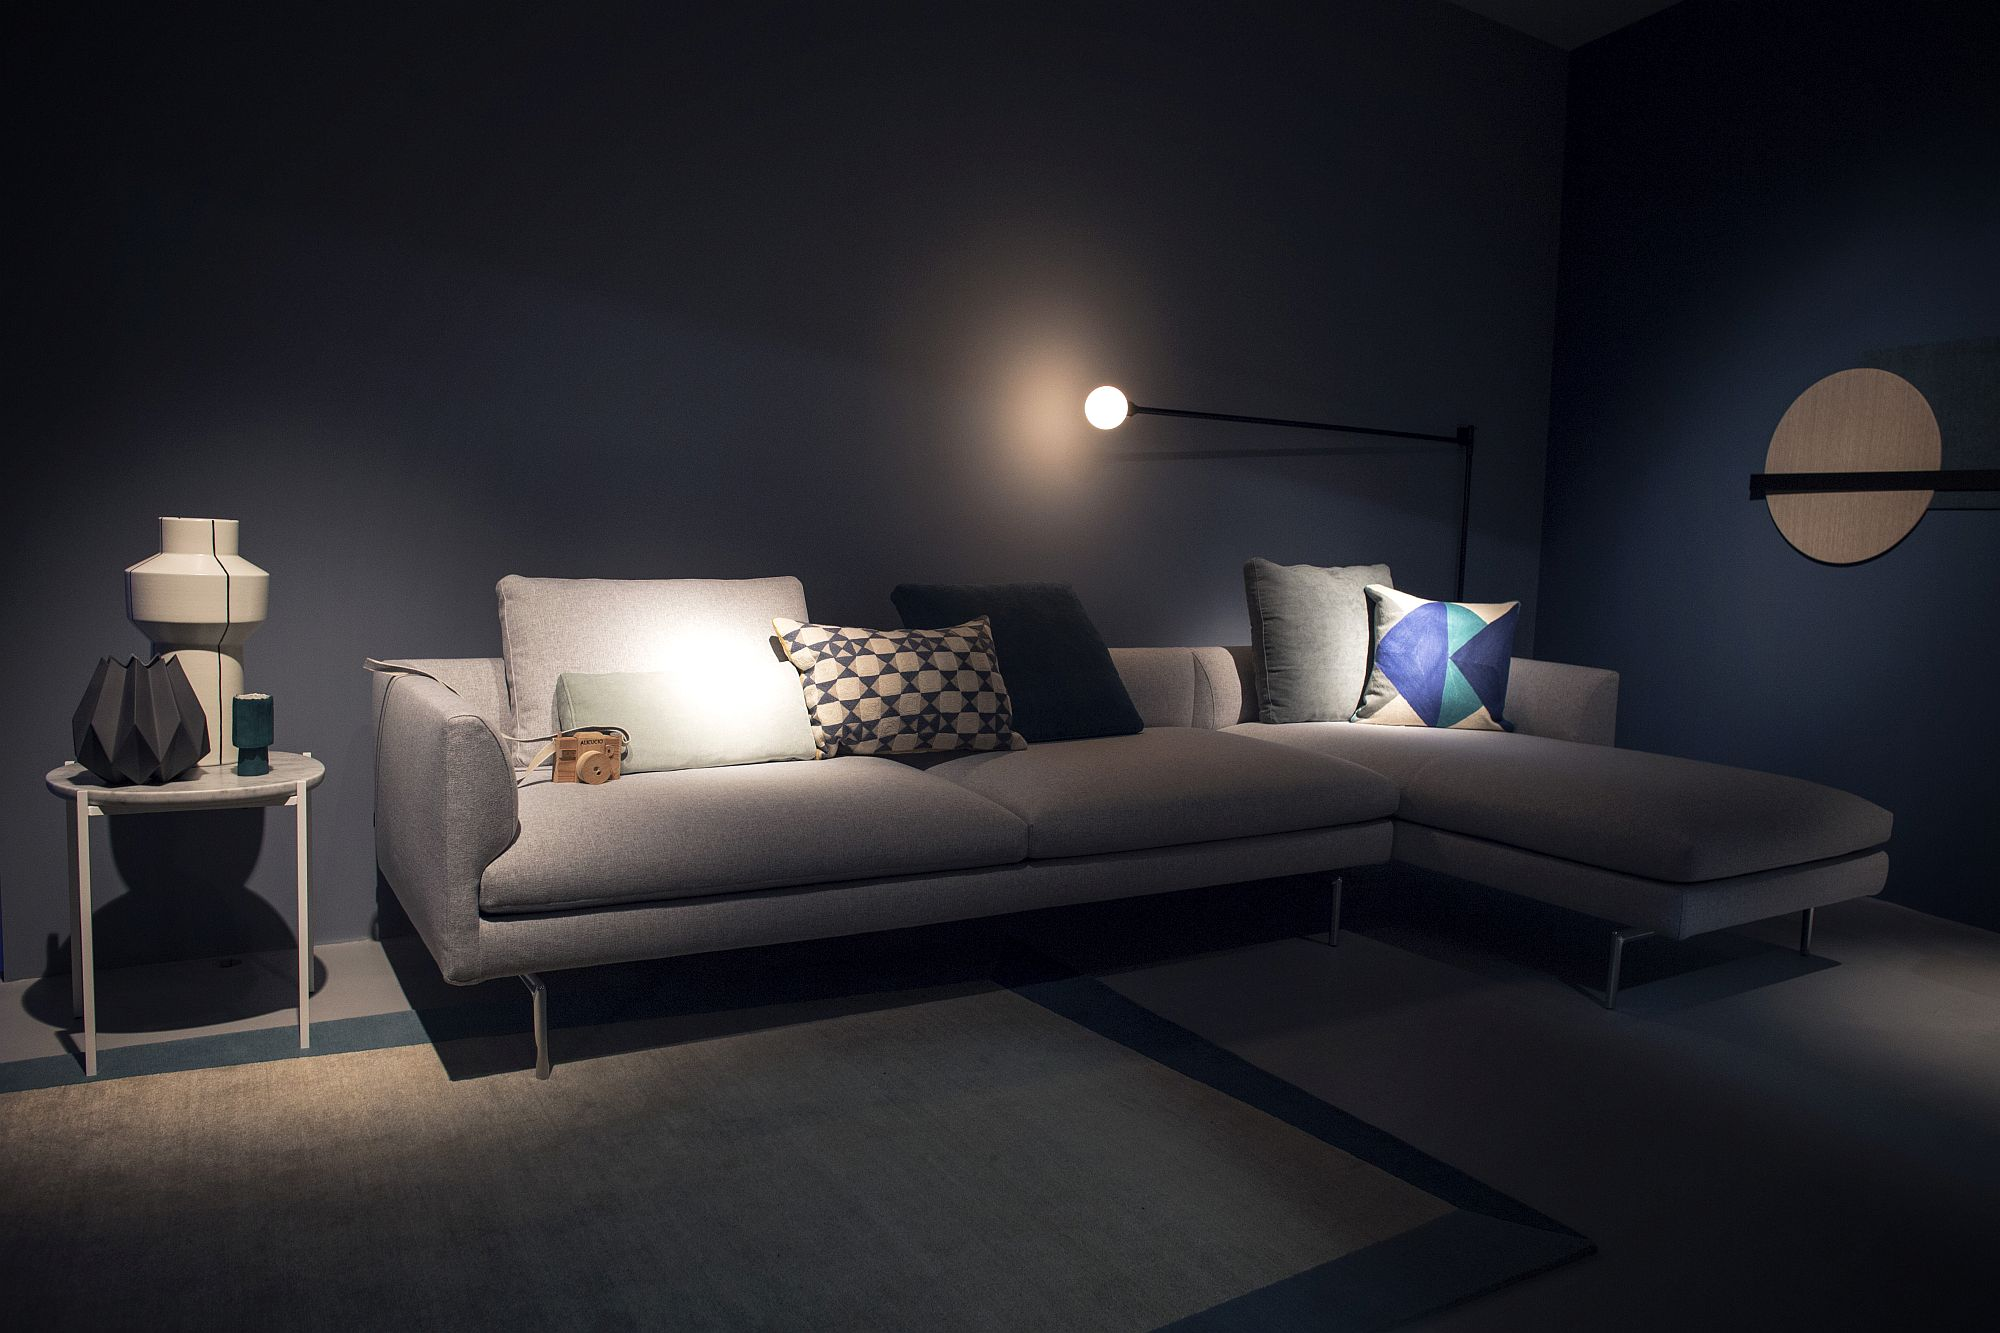 Flexible-floor-lamp-provides-perfect-lighting-for-your-reading-nook